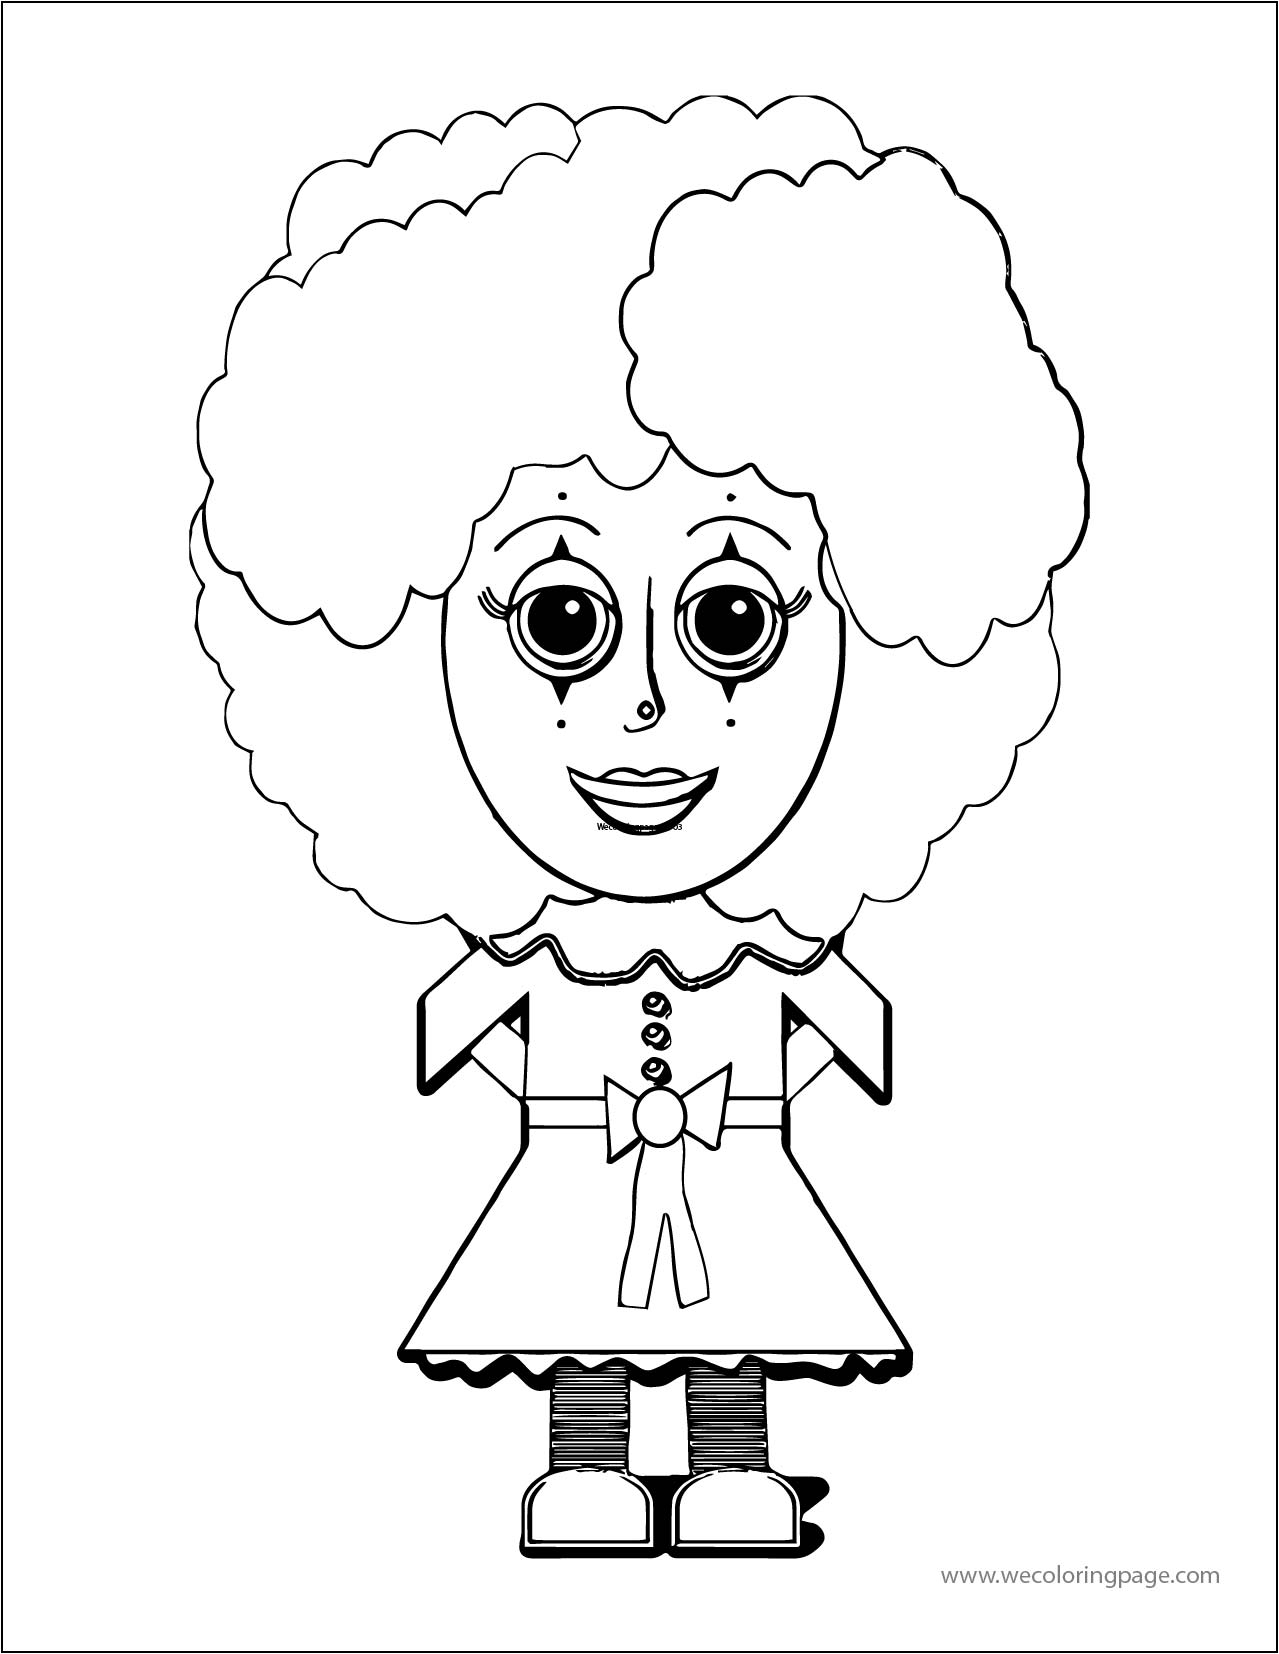 Clown Wecoloringpage A4 06 Coloring Page